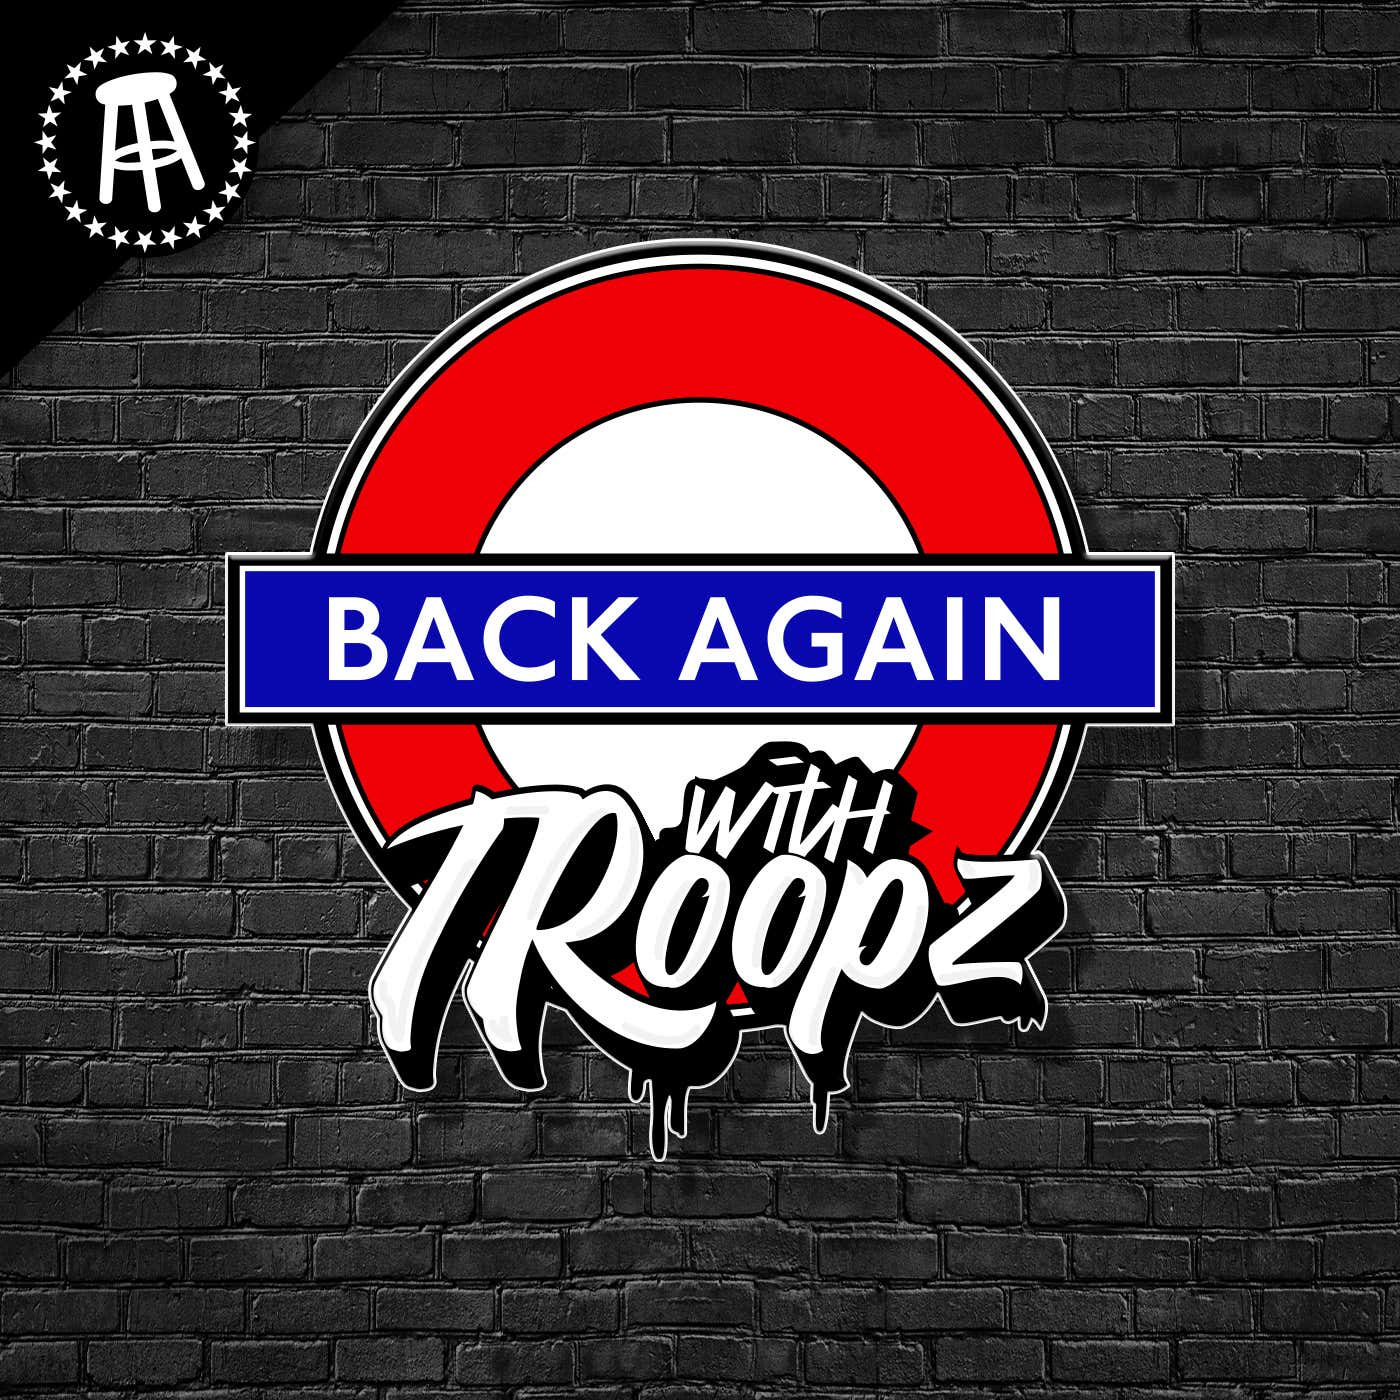 Back Again with Troopz